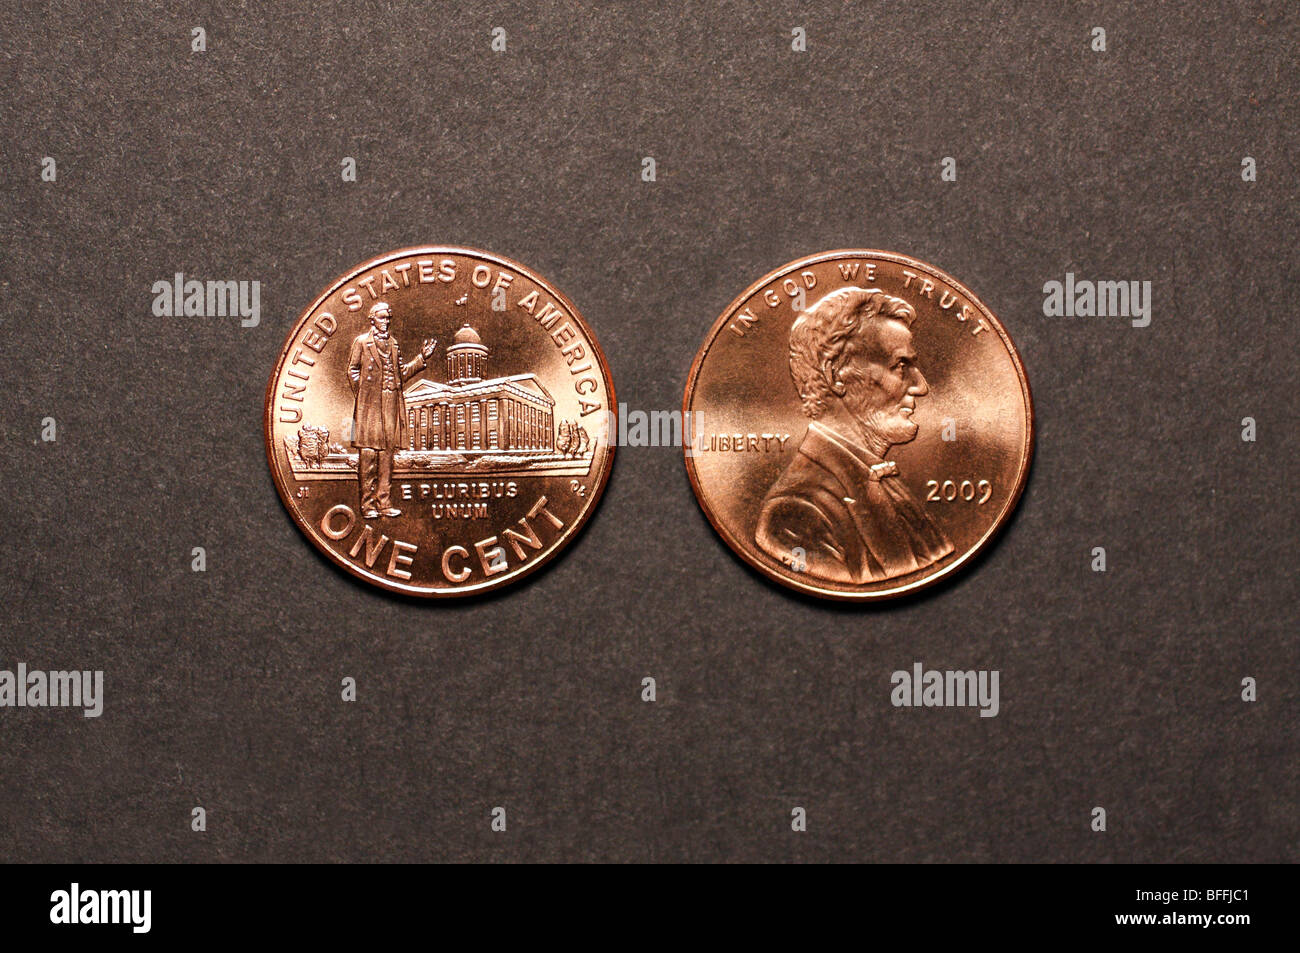 2009 U.S. Penny (Obverse & Reverse) Abraham Lincoln Standing by the Illinois State House on reverse. - Stock Image